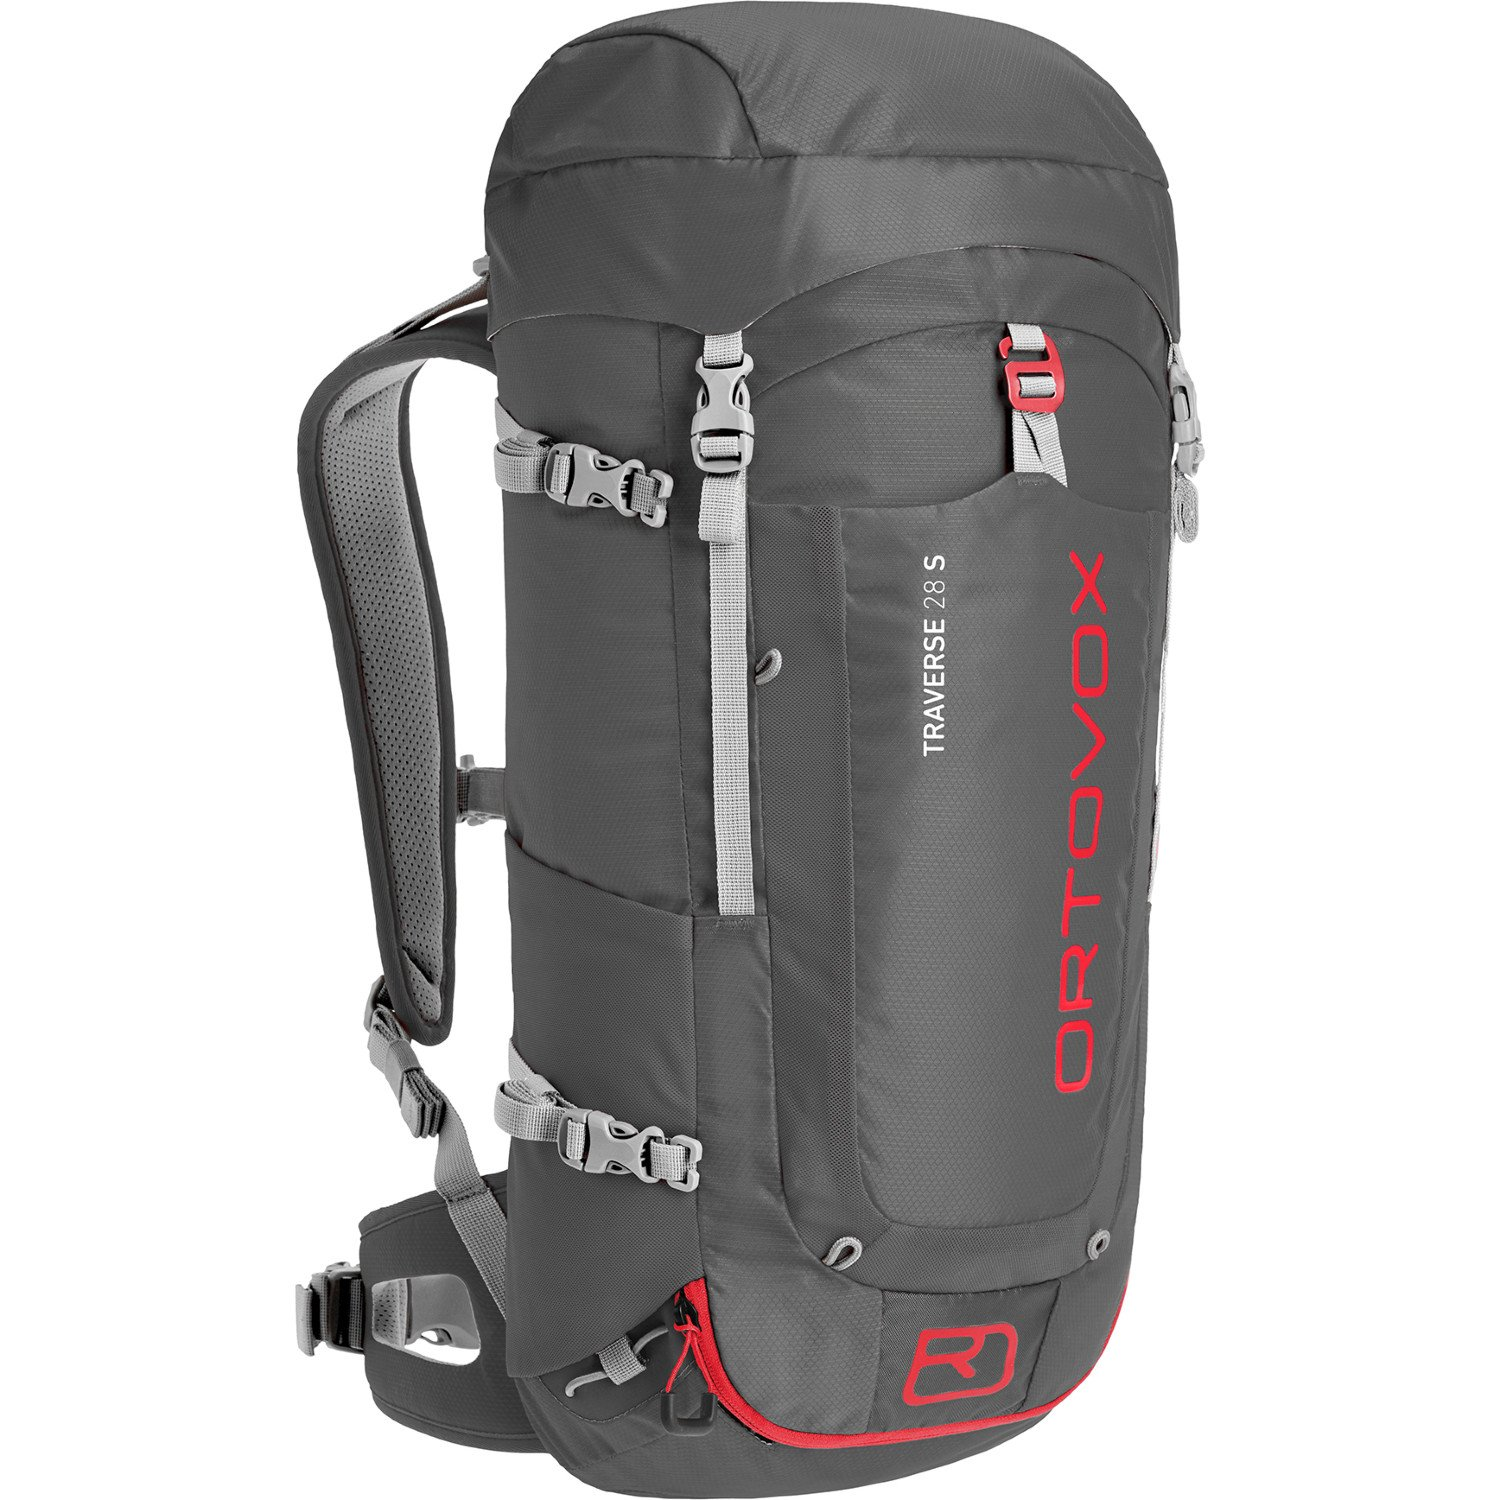 Ortovox Traverse 28 S Alpine Series Backpack - stone grey